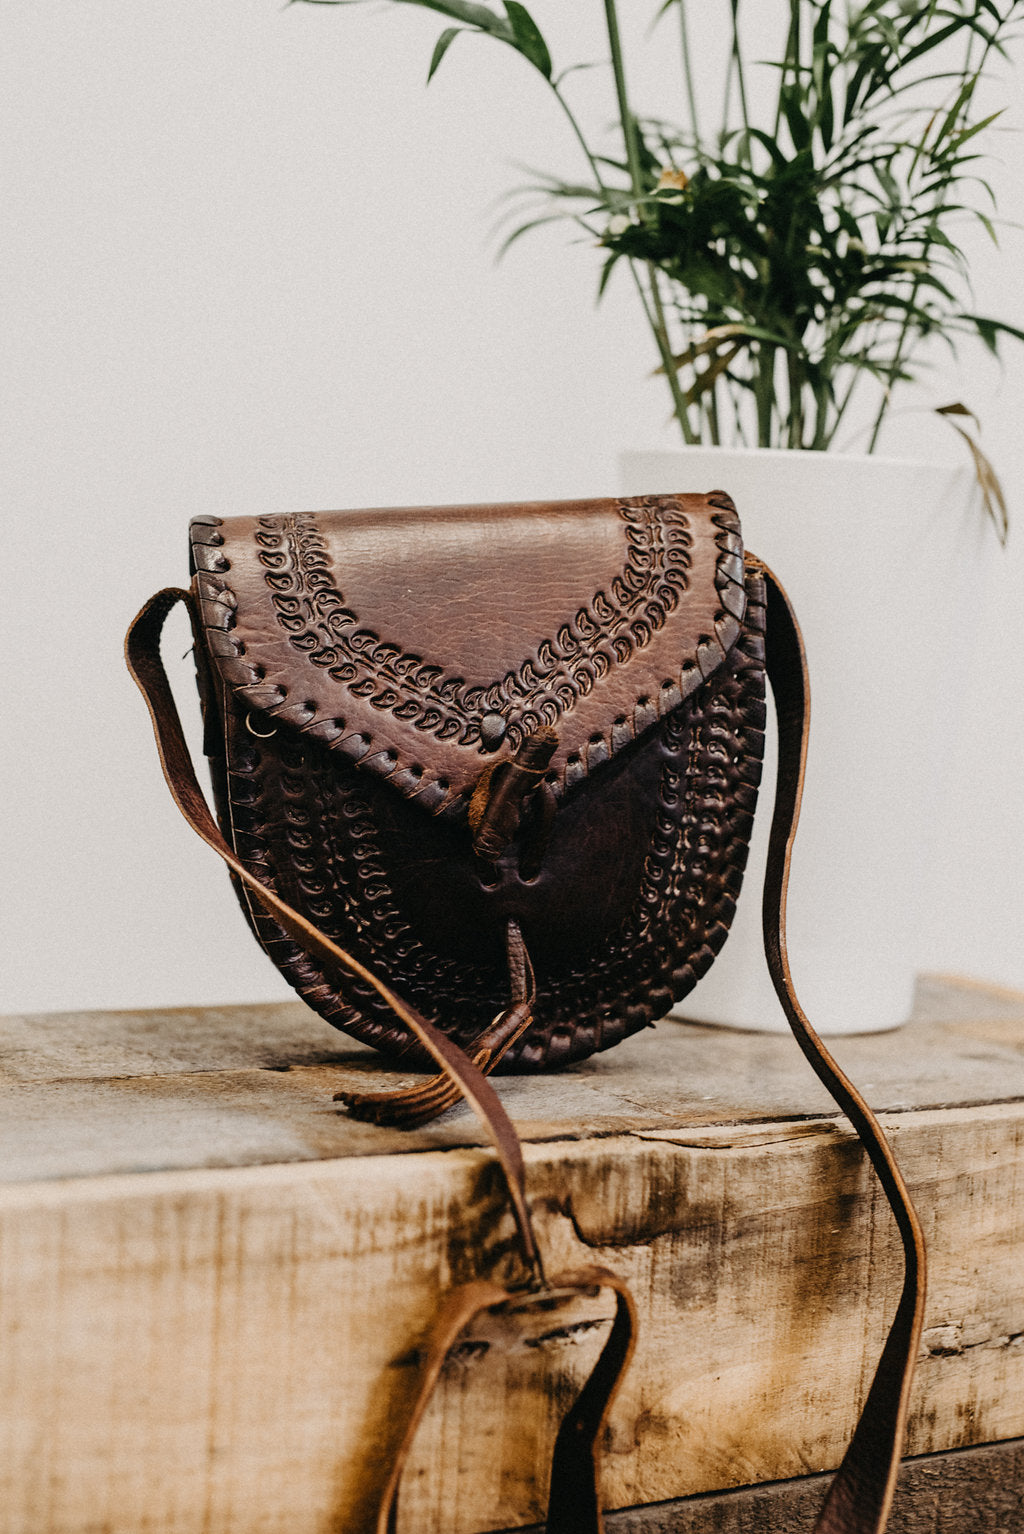 The Freya Vintage Leather Bag